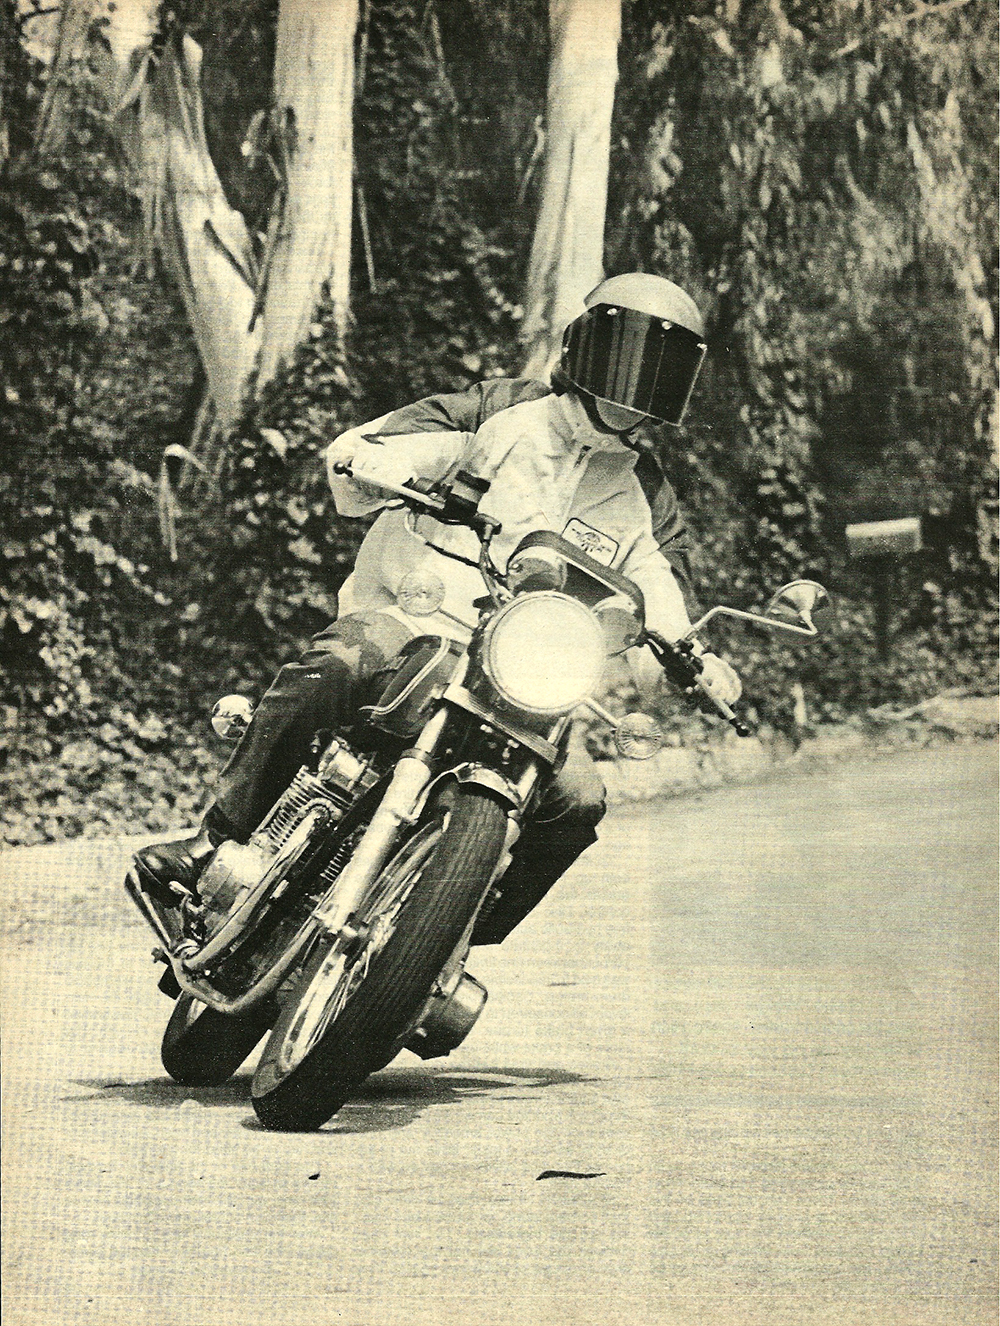 1977 Suzuki GS550 road test 01.jpg